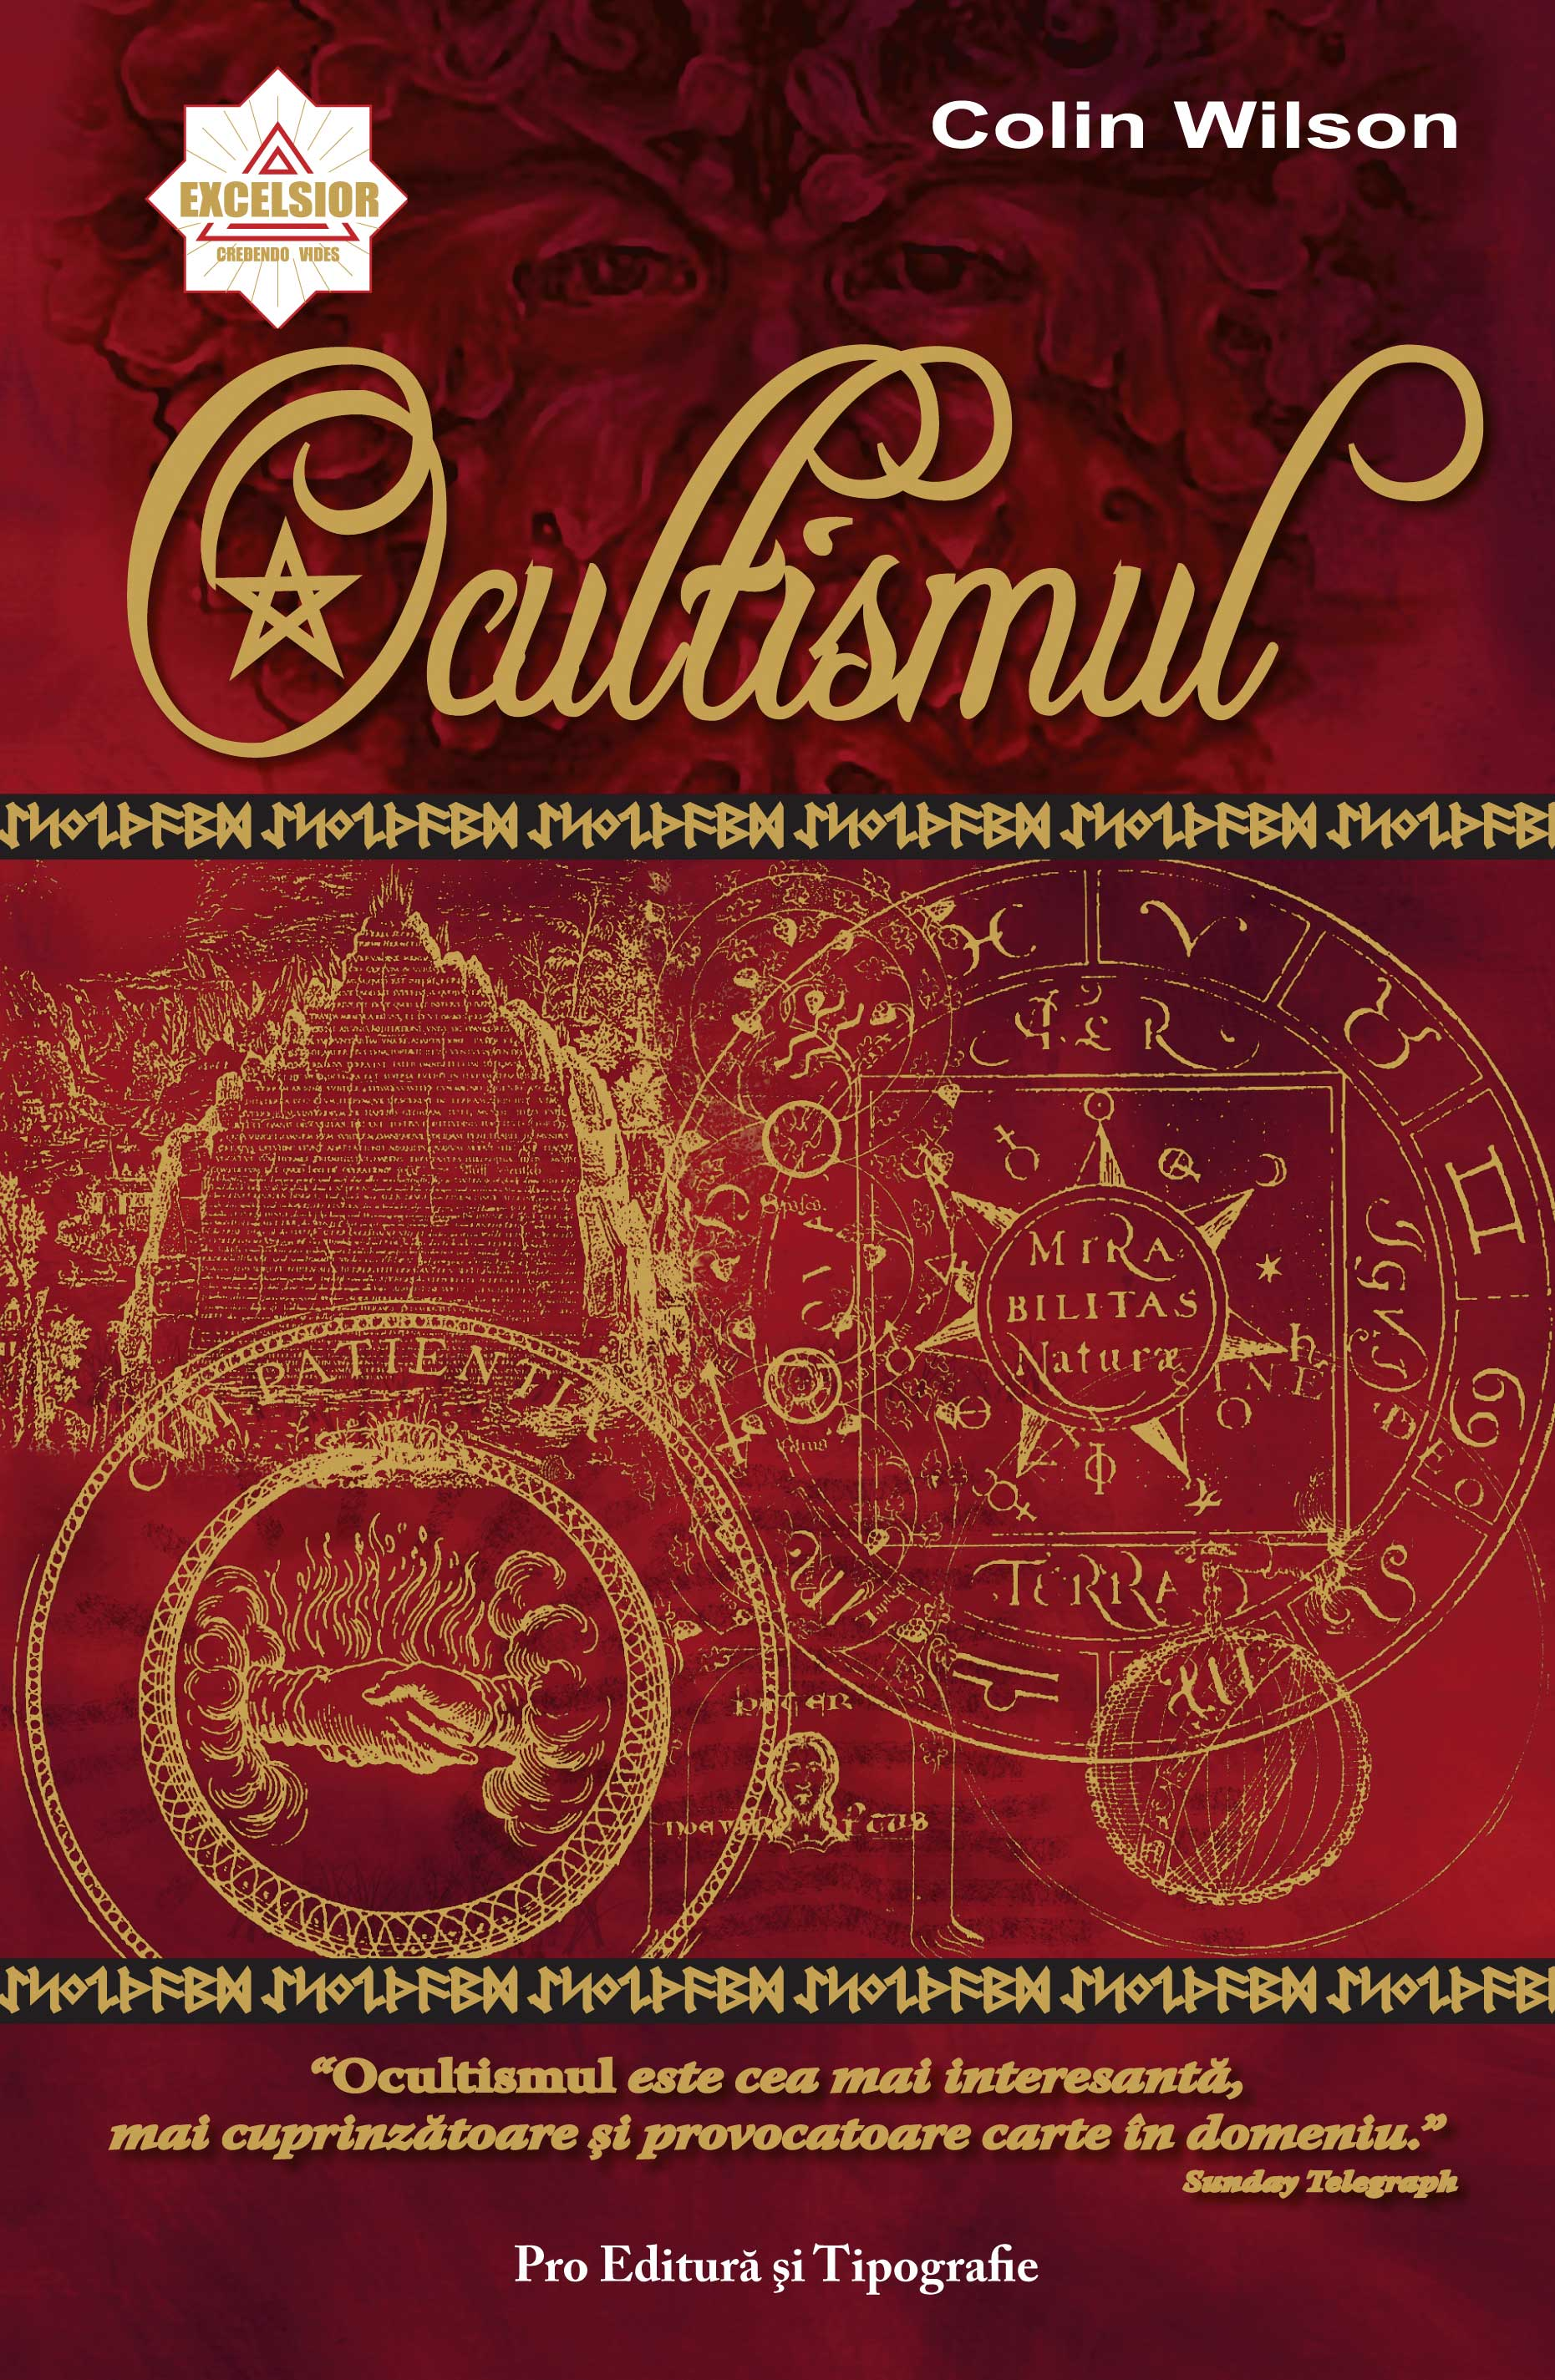 Ocultismul